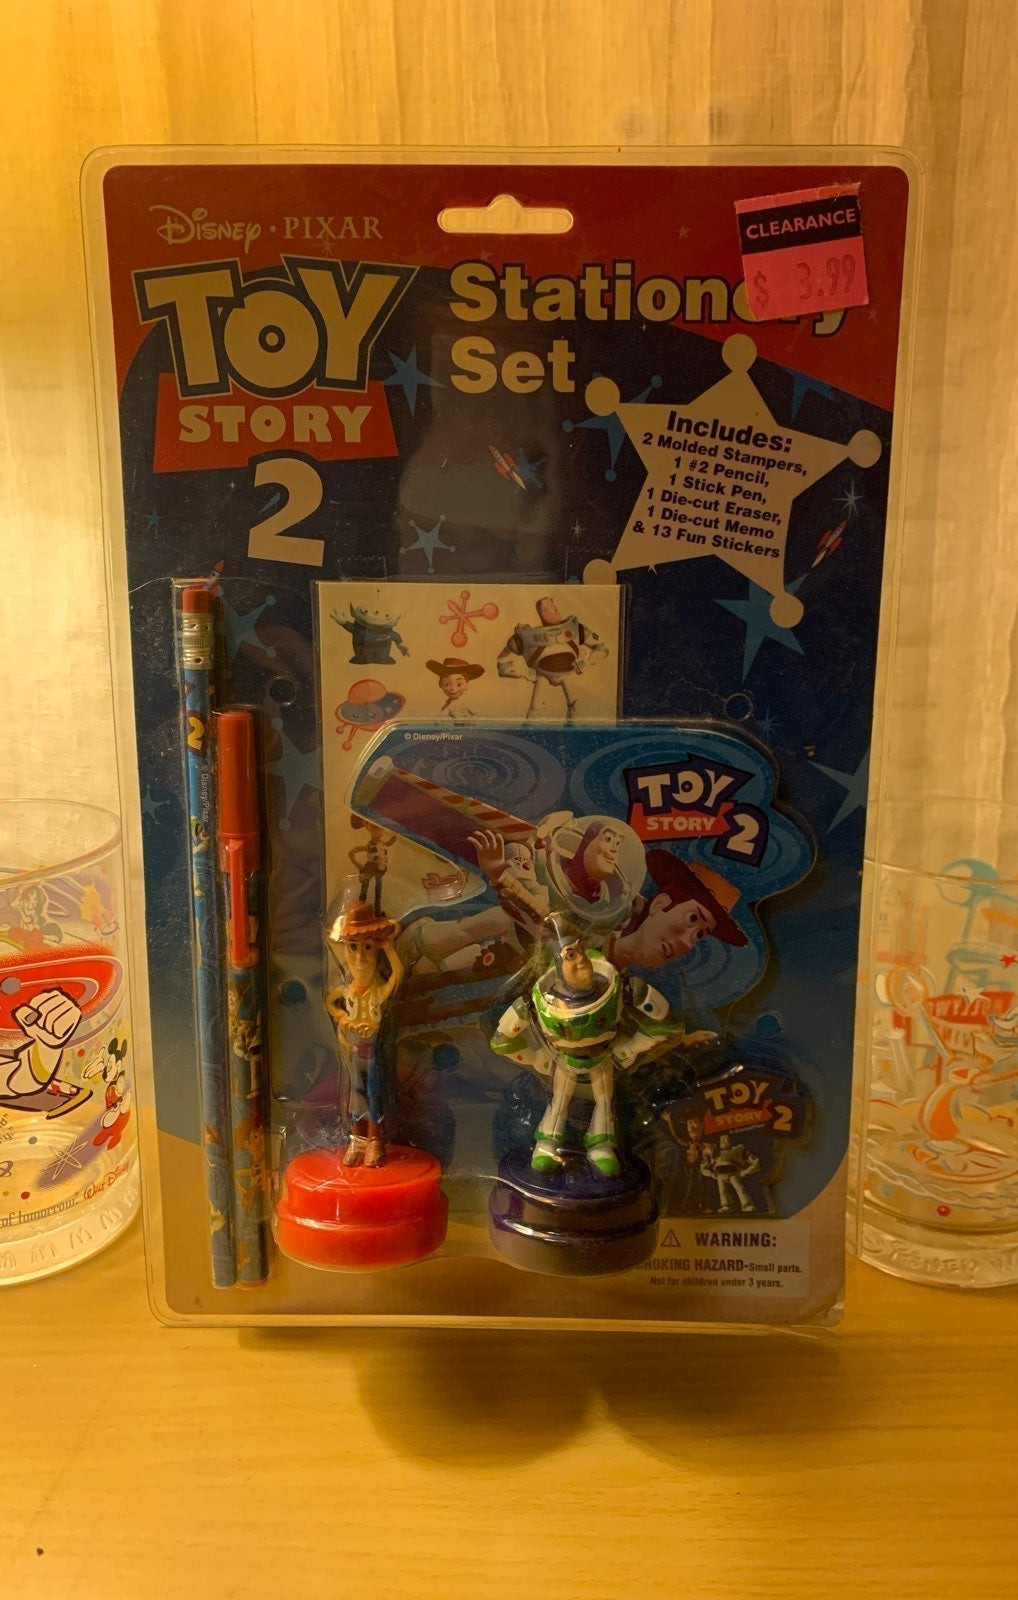 Toy Story 2 Stationery Set